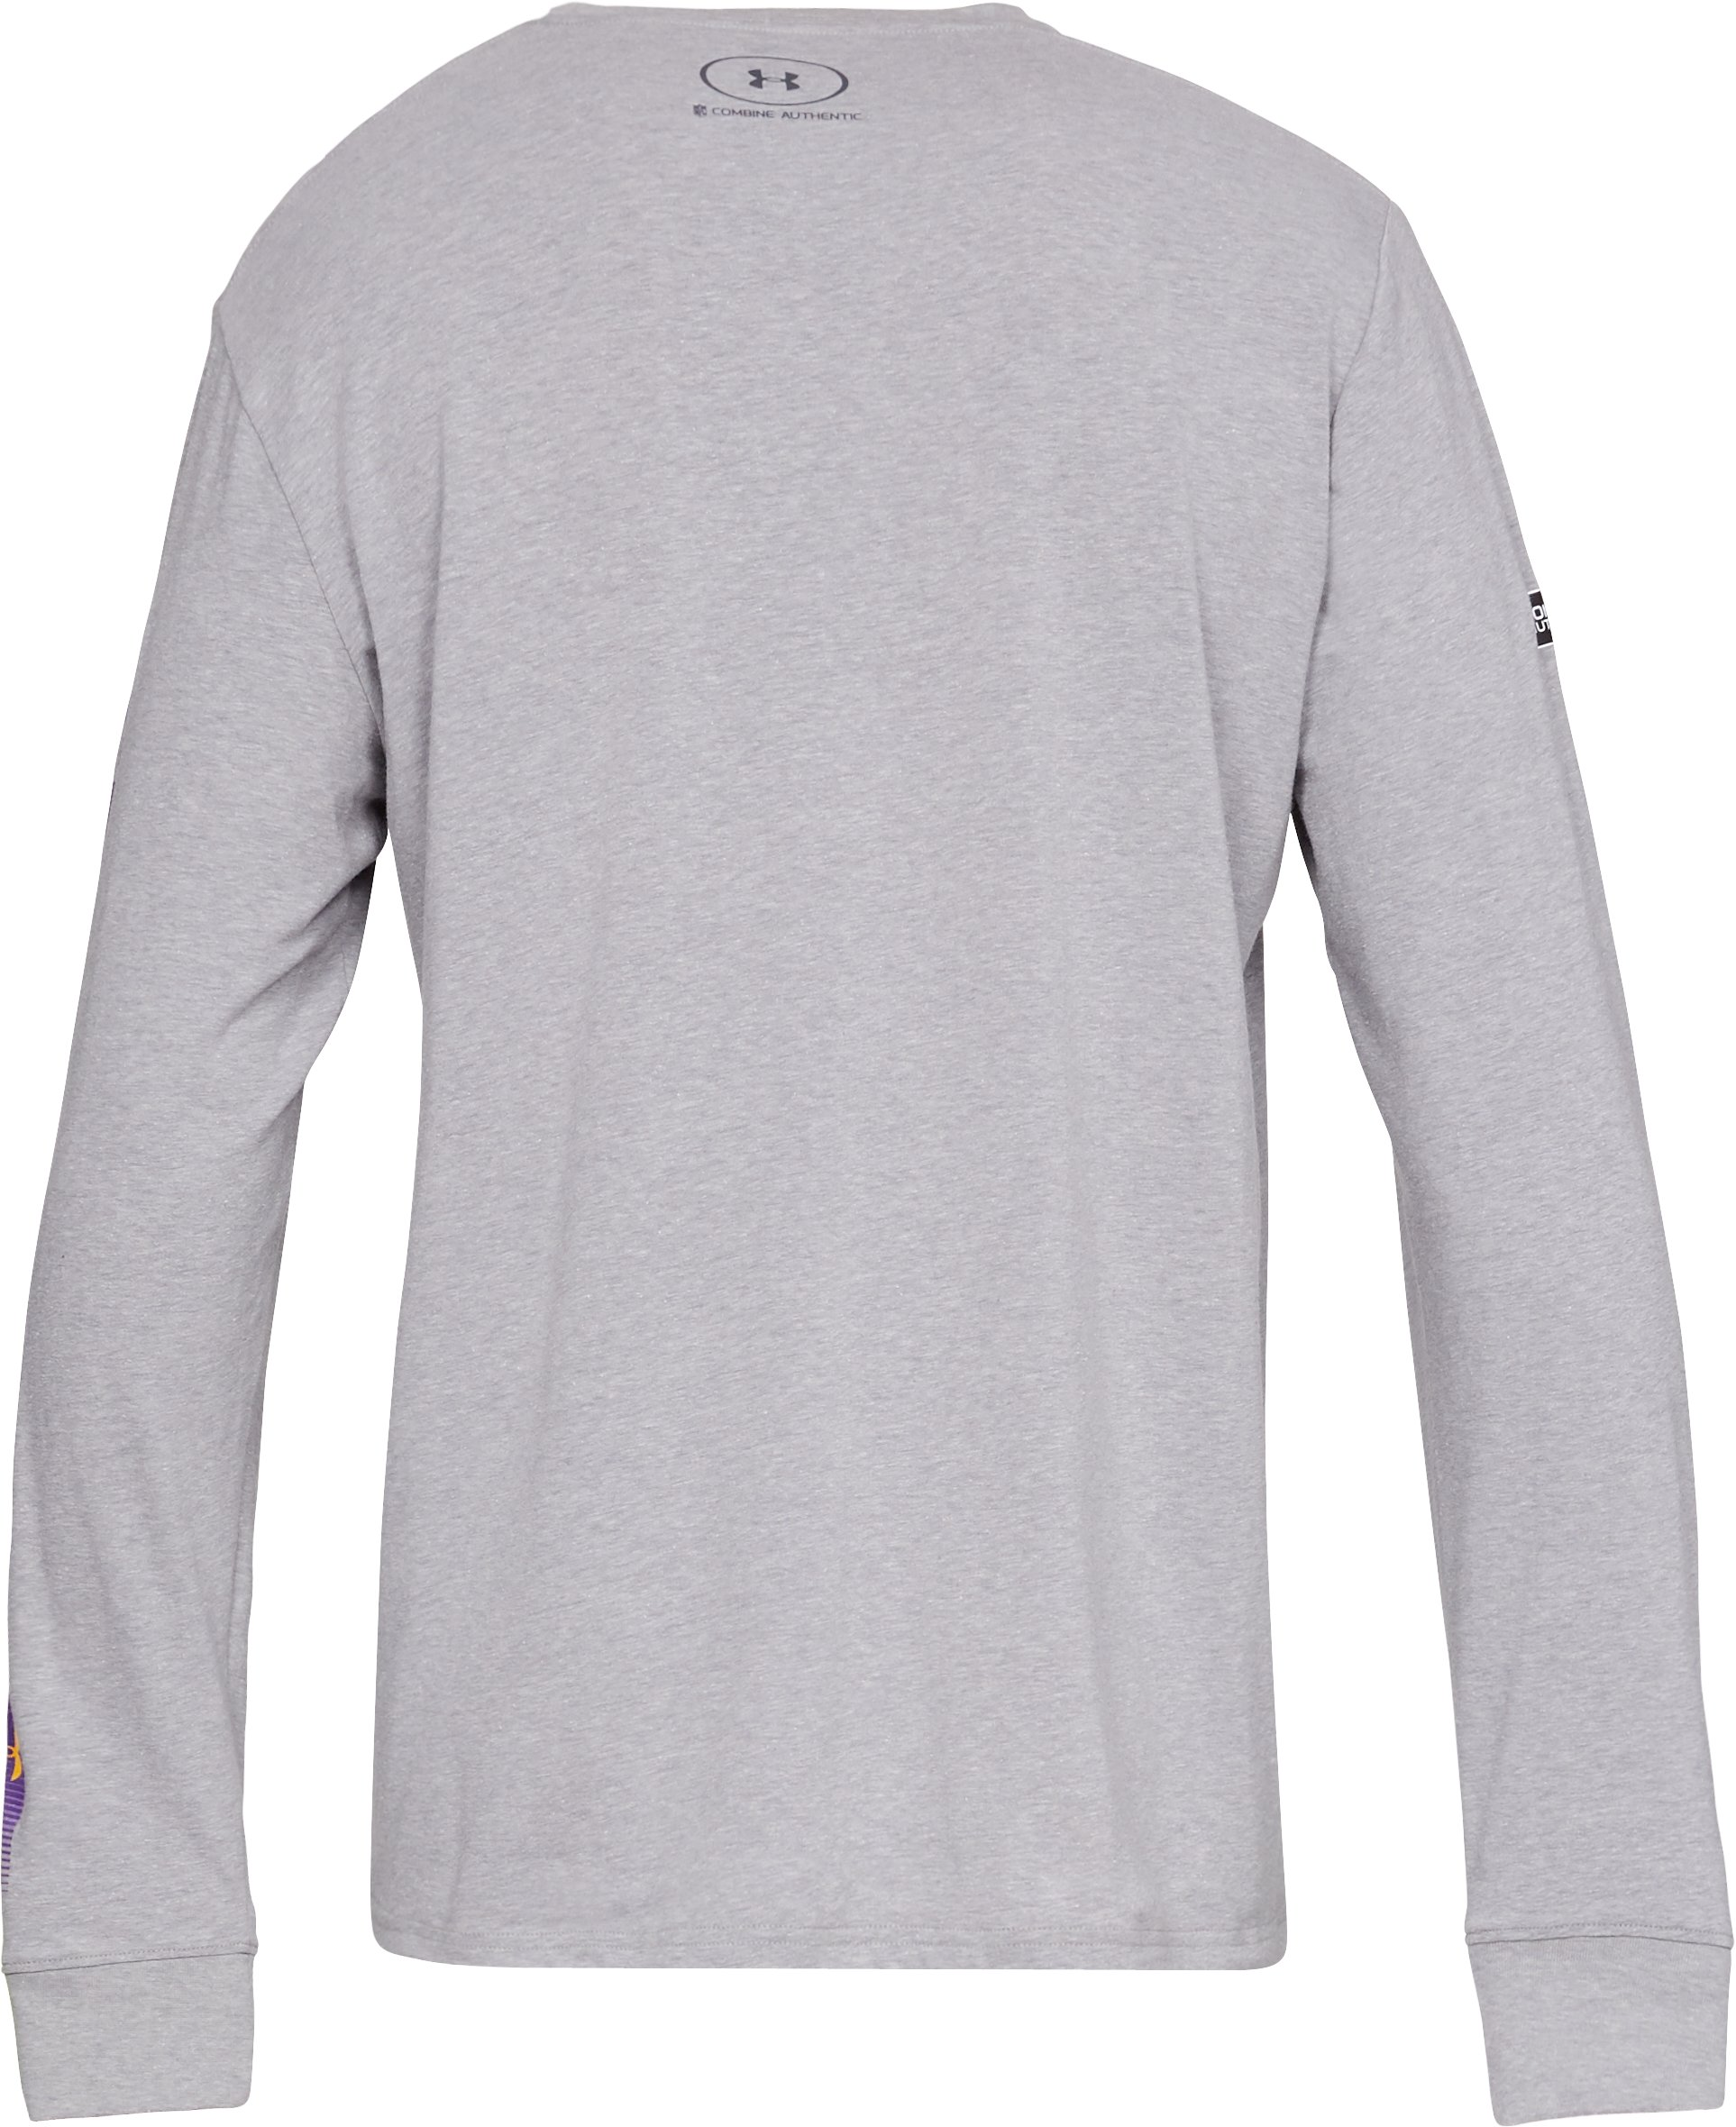 Men's NFL Combine Authentic City Long Sleeve T-Shirt, NFL_Minnesota Vikings_Steel Heather,